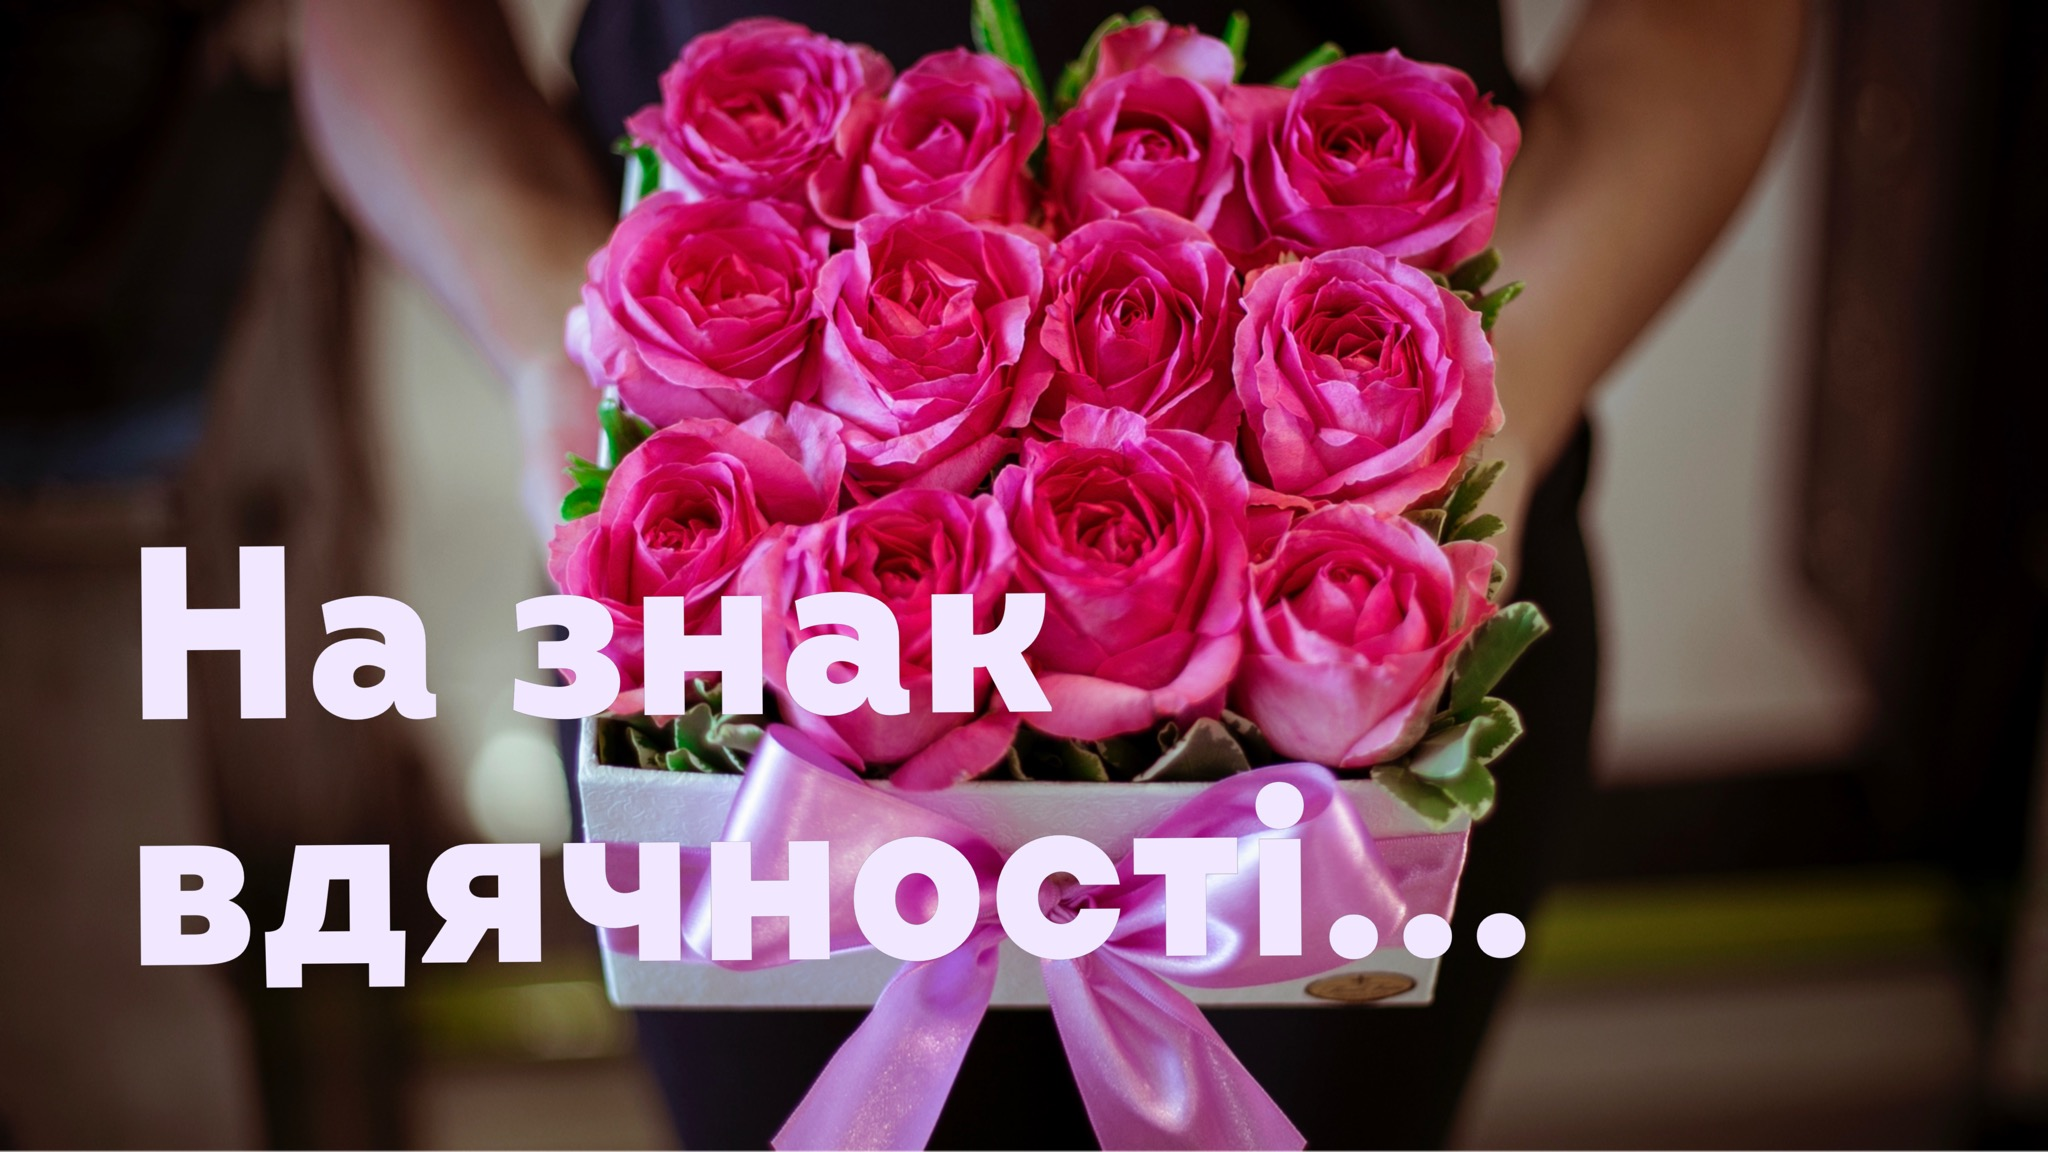 How to express gratitude in Ukrainian